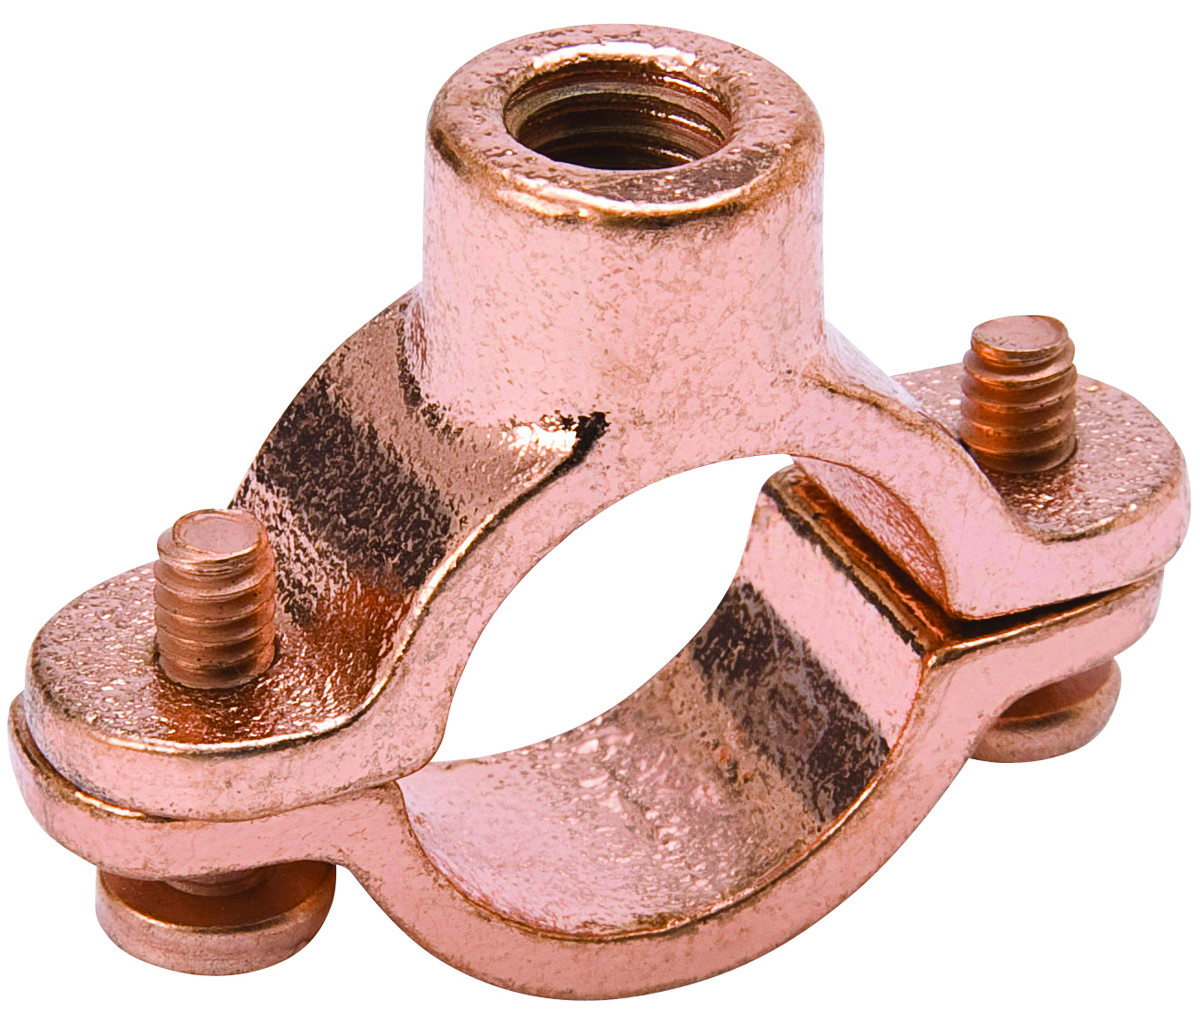 B&K Mueller C72-075HC Ring Hanger Split Copper 3/4